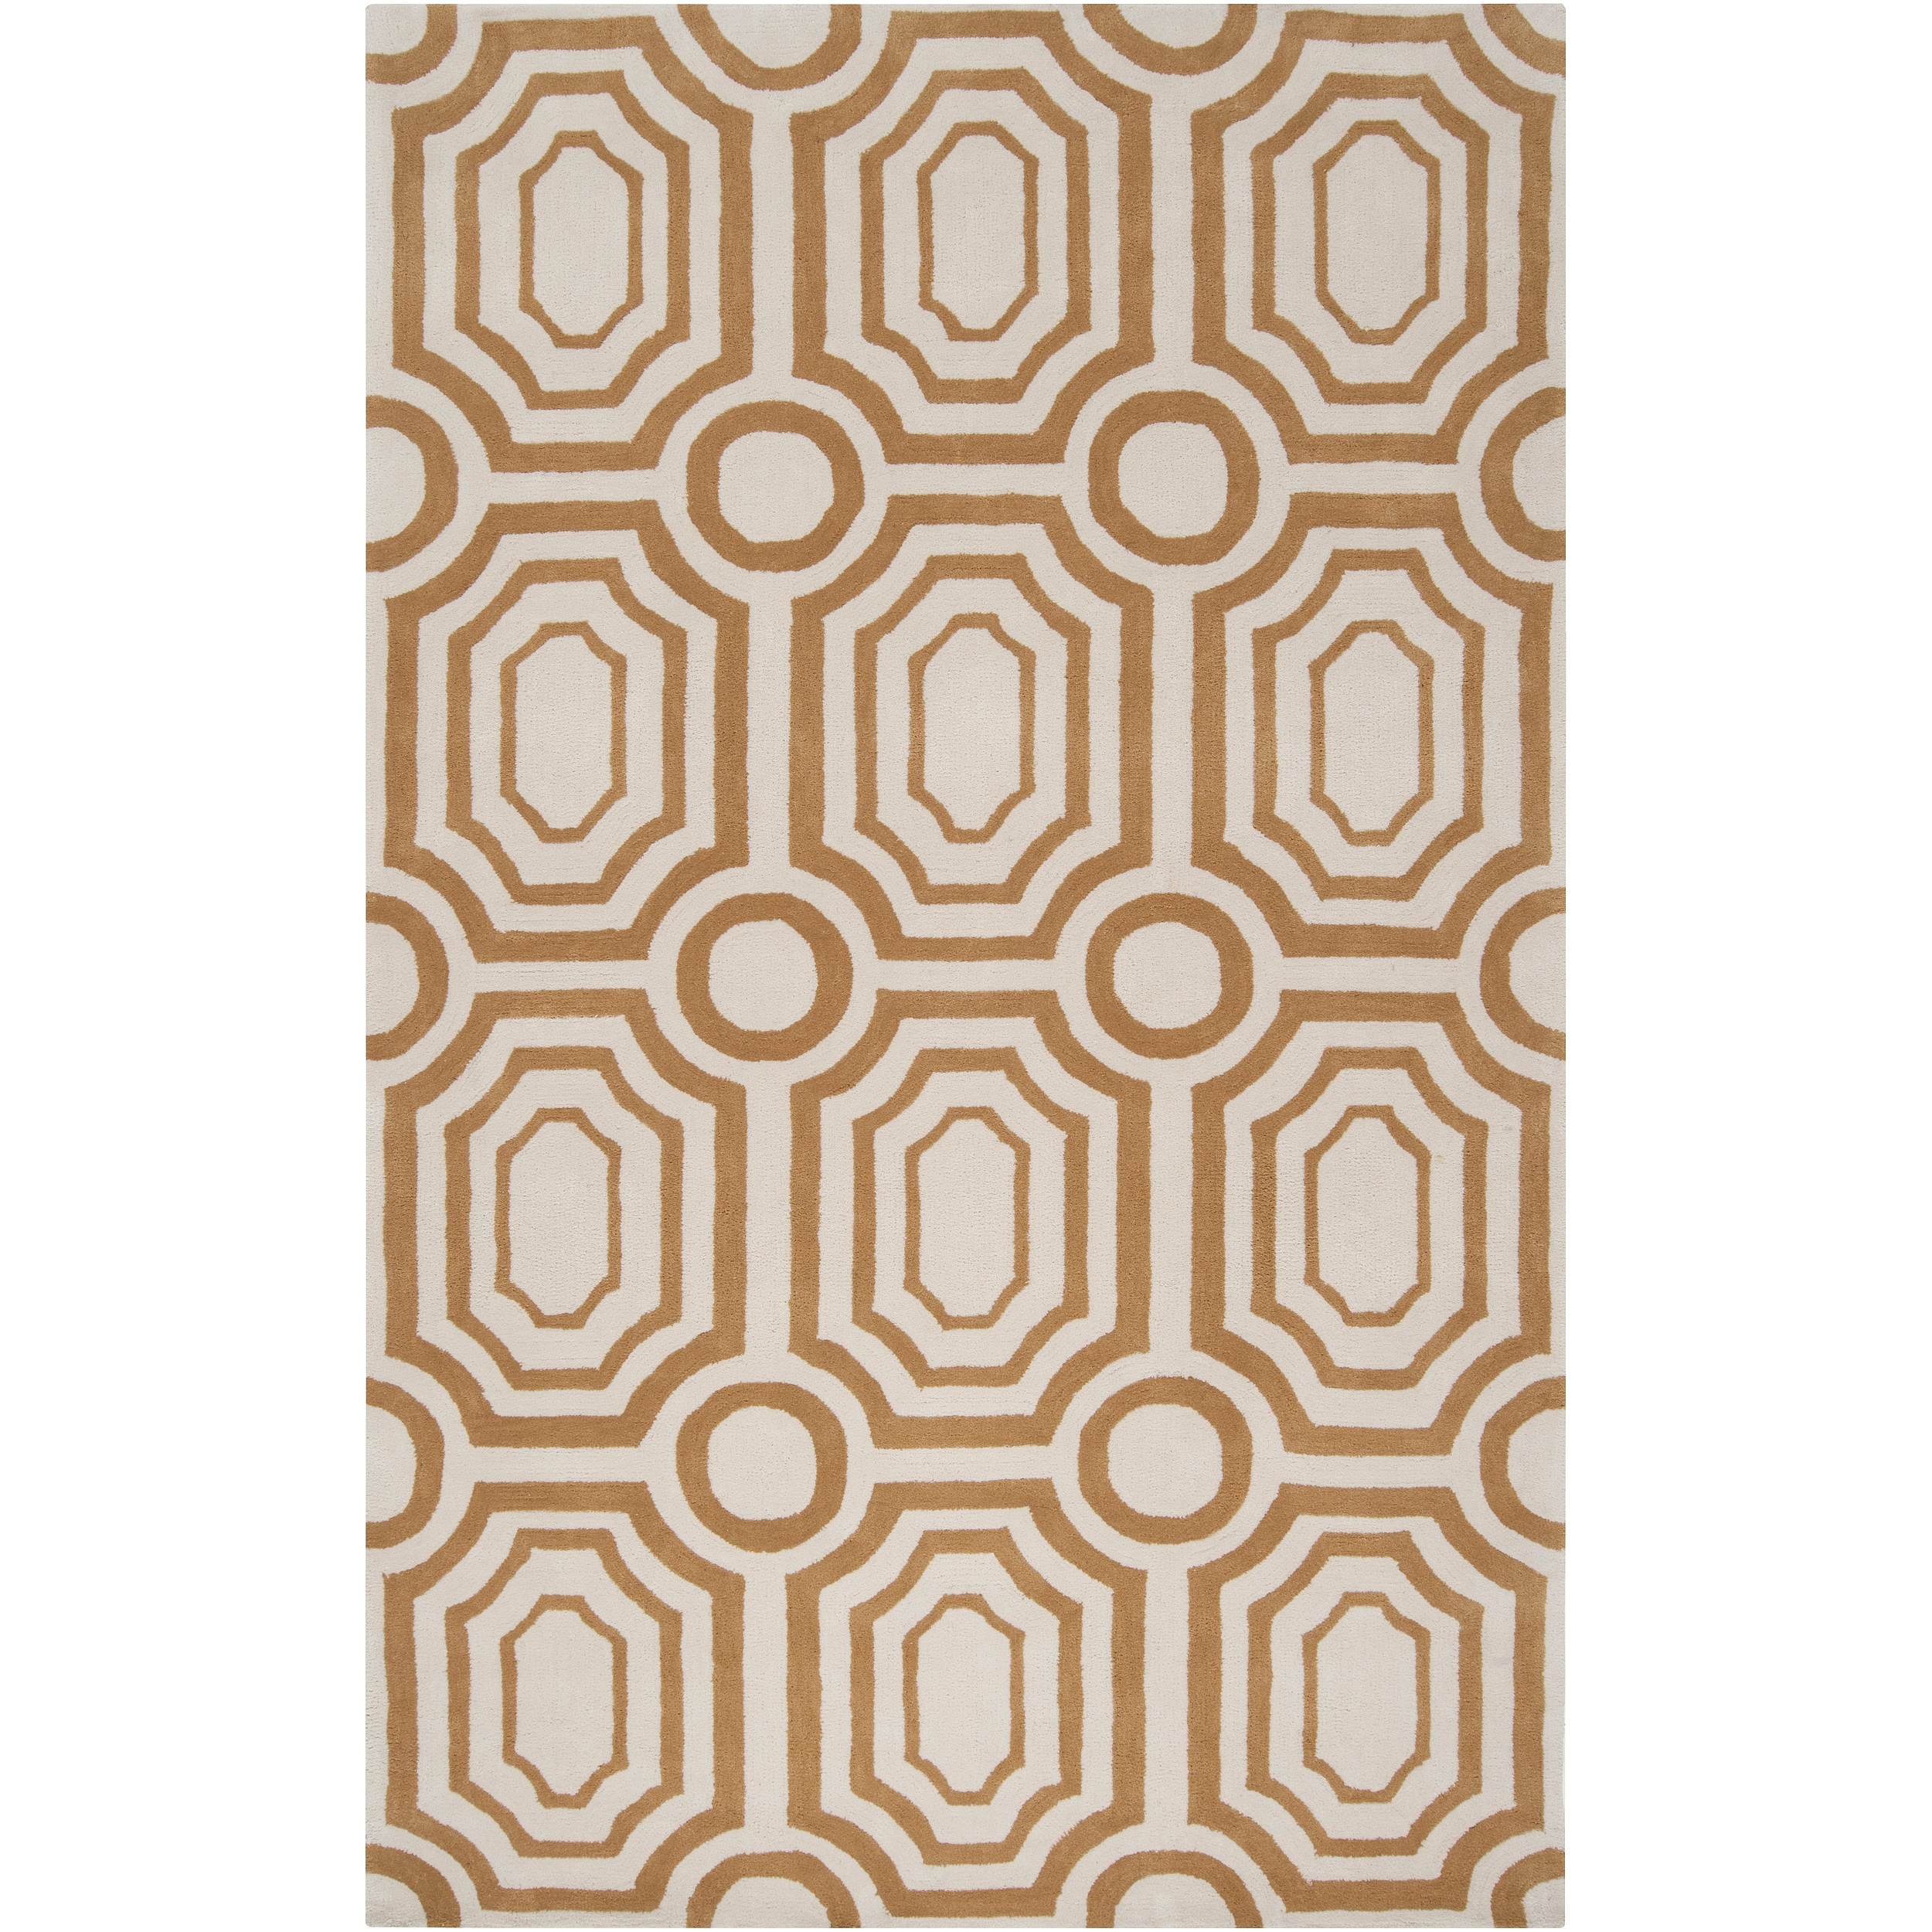 Hand-tufted Gold Hudson Park Polyester Rug (5' x 7'6)